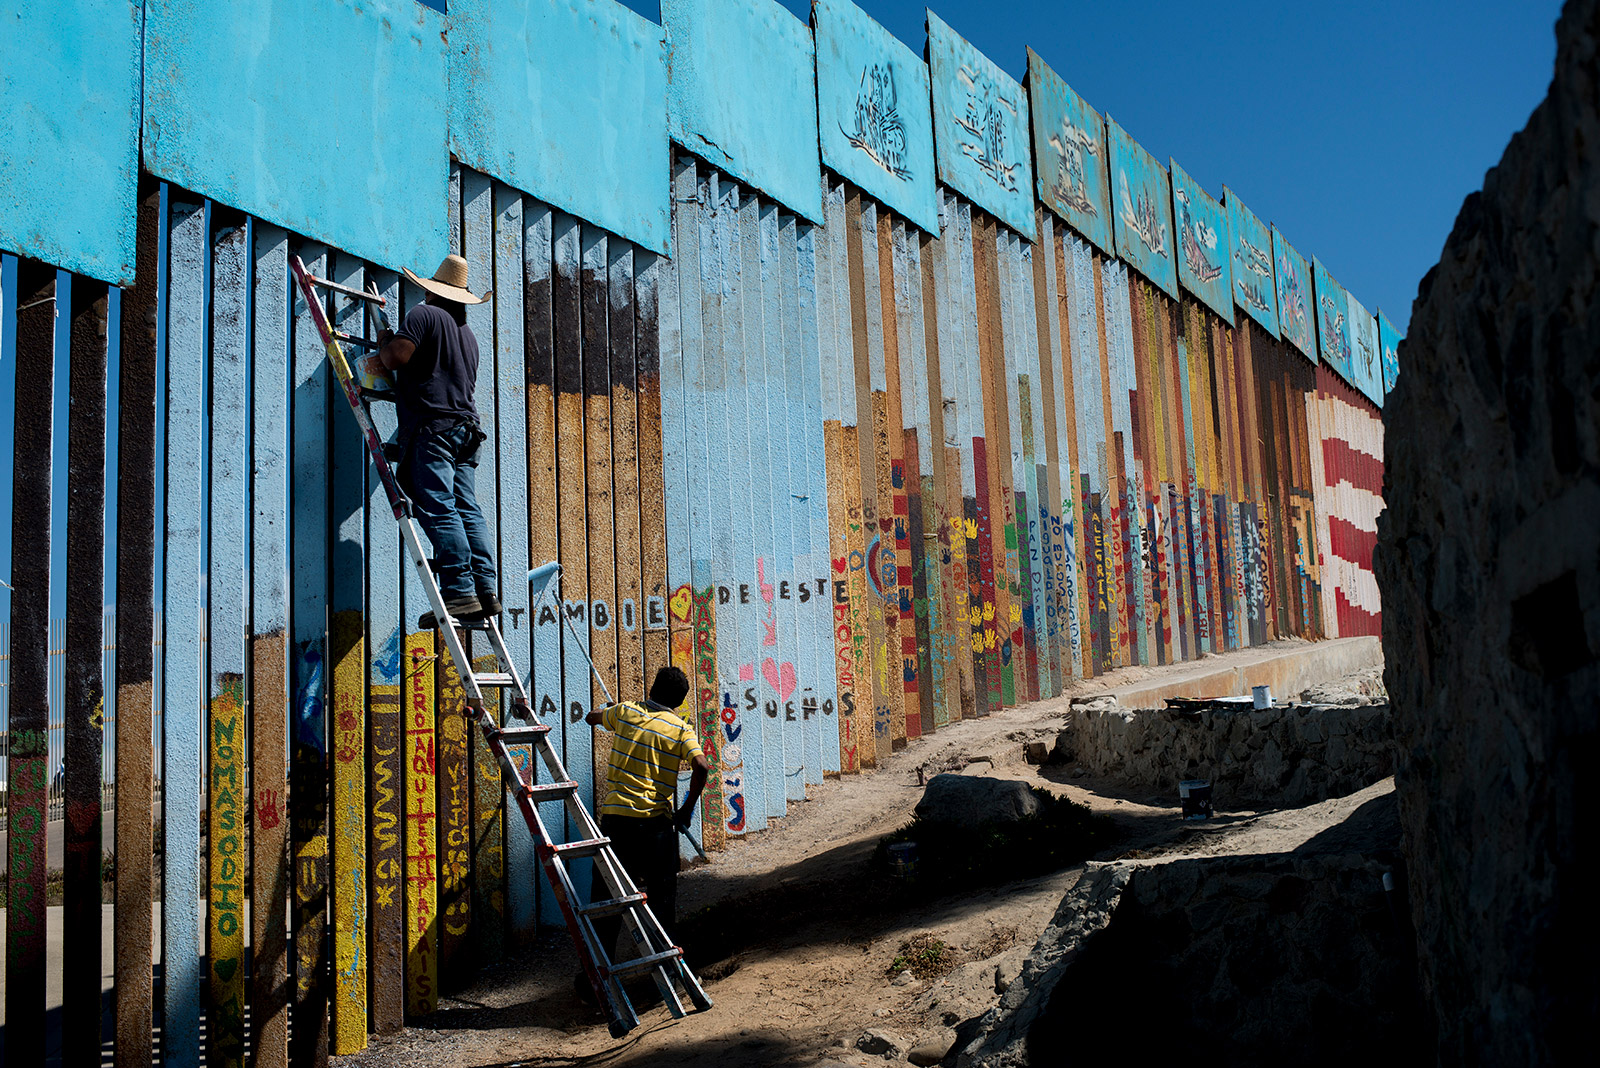 Enrique Chiu stands on a ladder to paint the U.S.-Mexico border fencing at Friendship Park in Tijuana on Oct. 7, 2017. <em>(Brandon Quester/inewsource)</em>